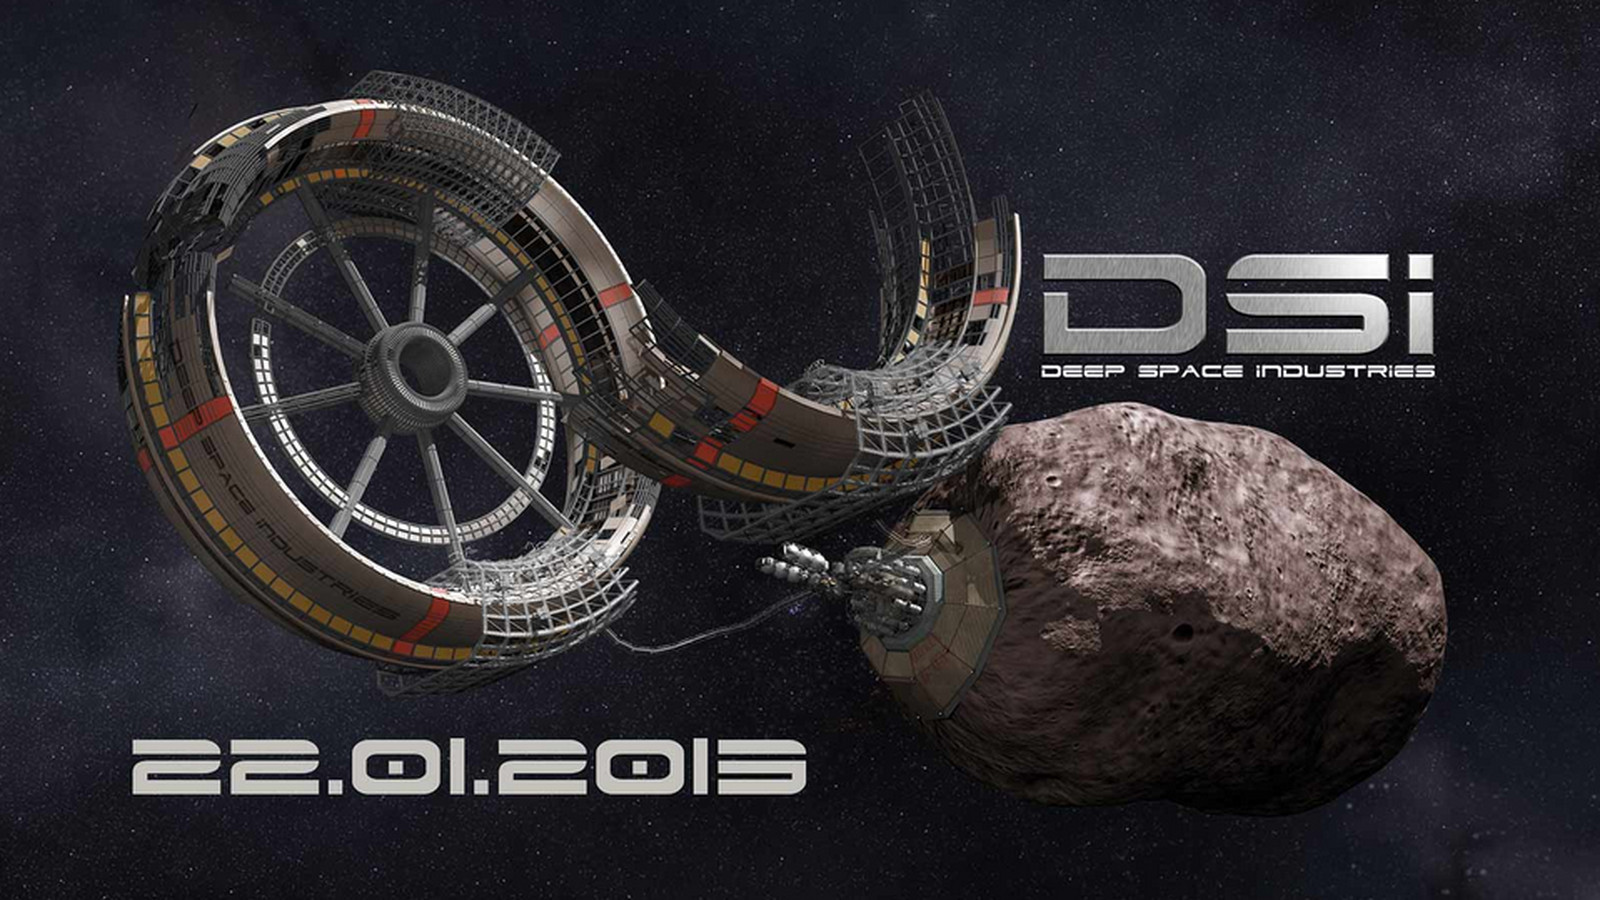 Deep Space Industries will send 'FireFly' ships to prospect for mineable asteroids in 2015